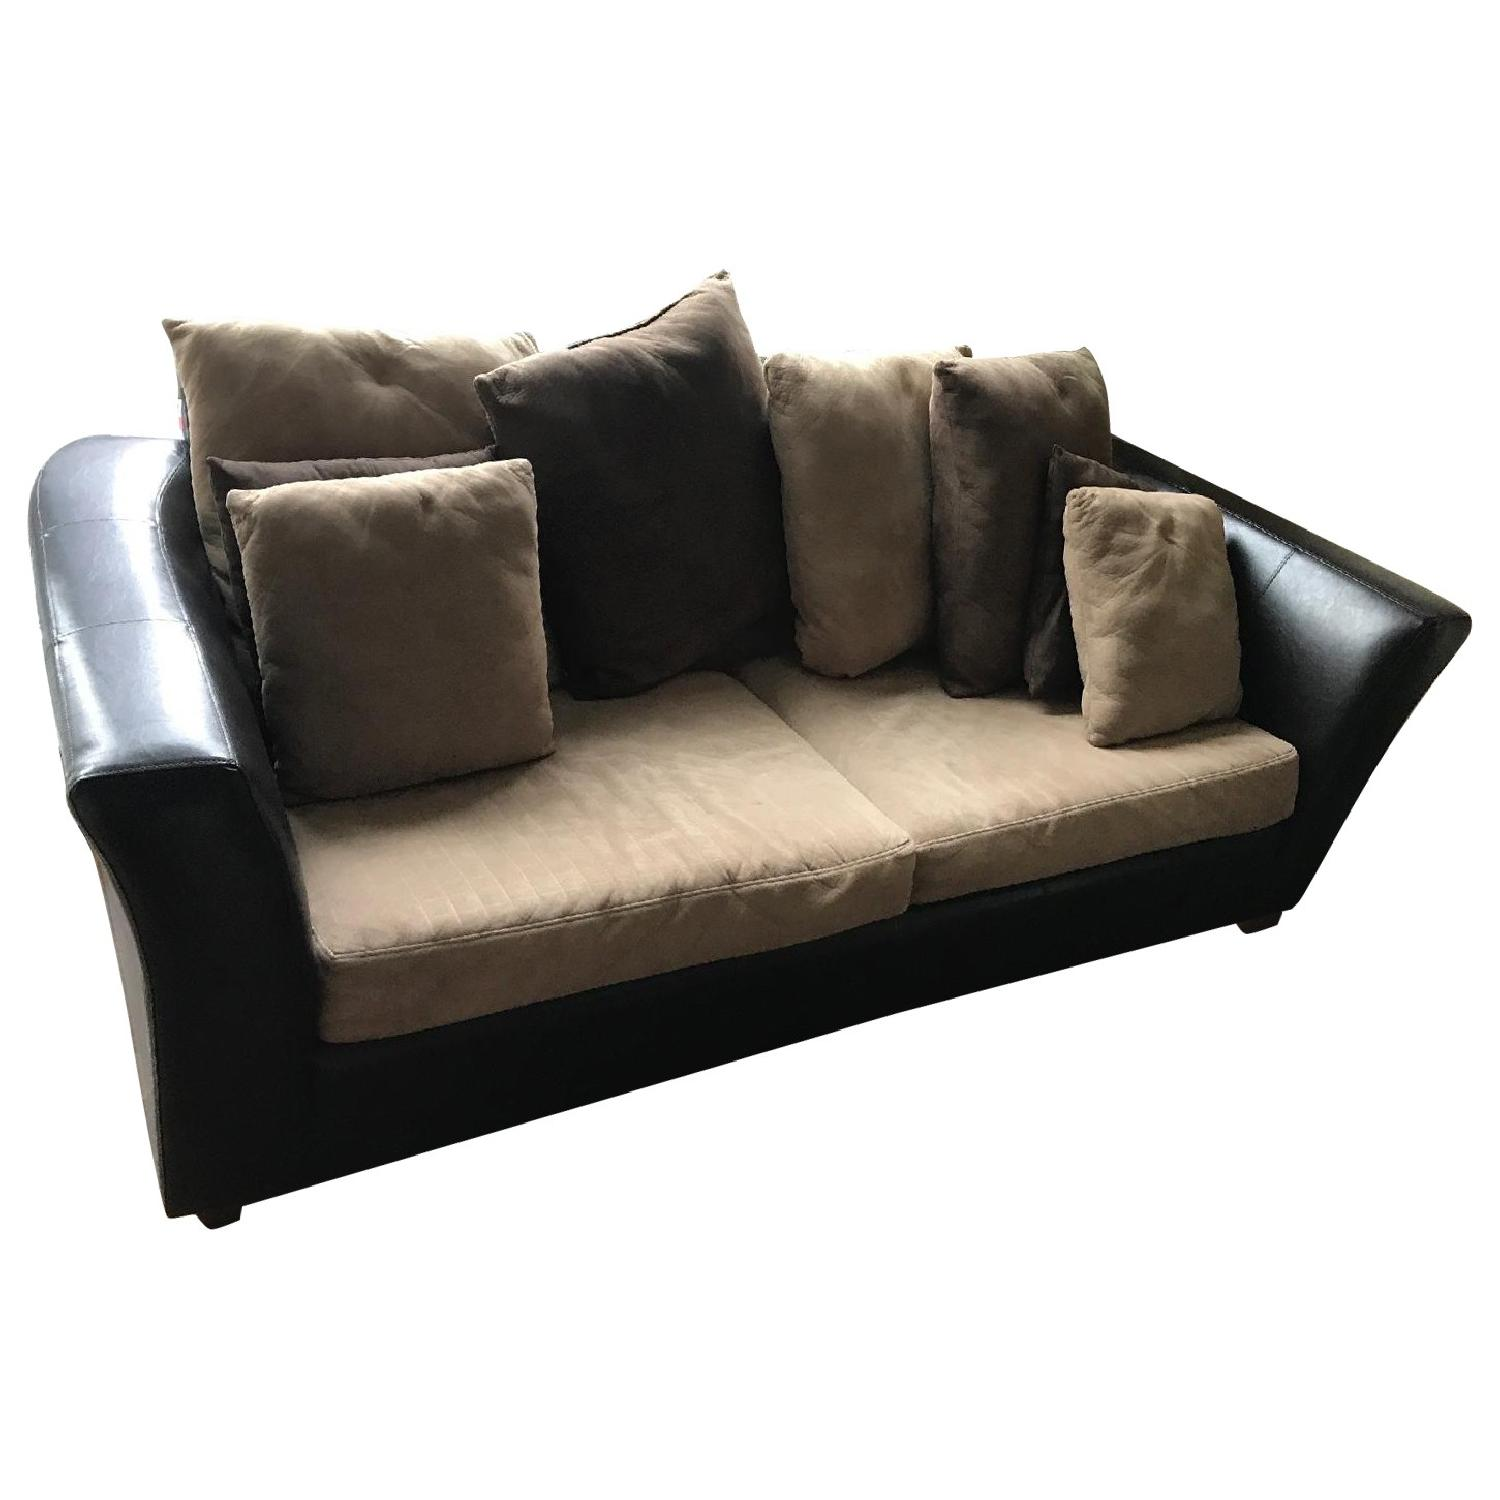 sofa photos sourceimage design with sleeper queen sofablack living dorel faux mainstays staggering black leather